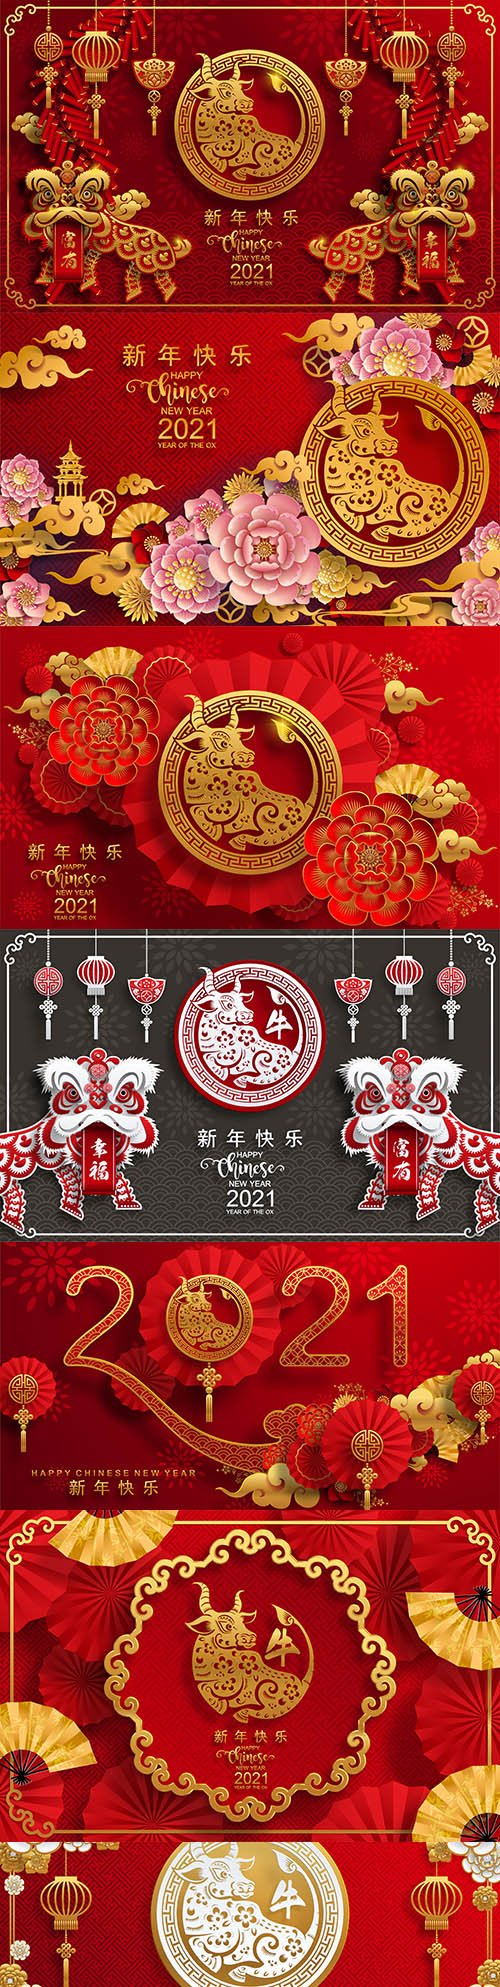 Metal Bull 2021 New Year on Chinese calendar